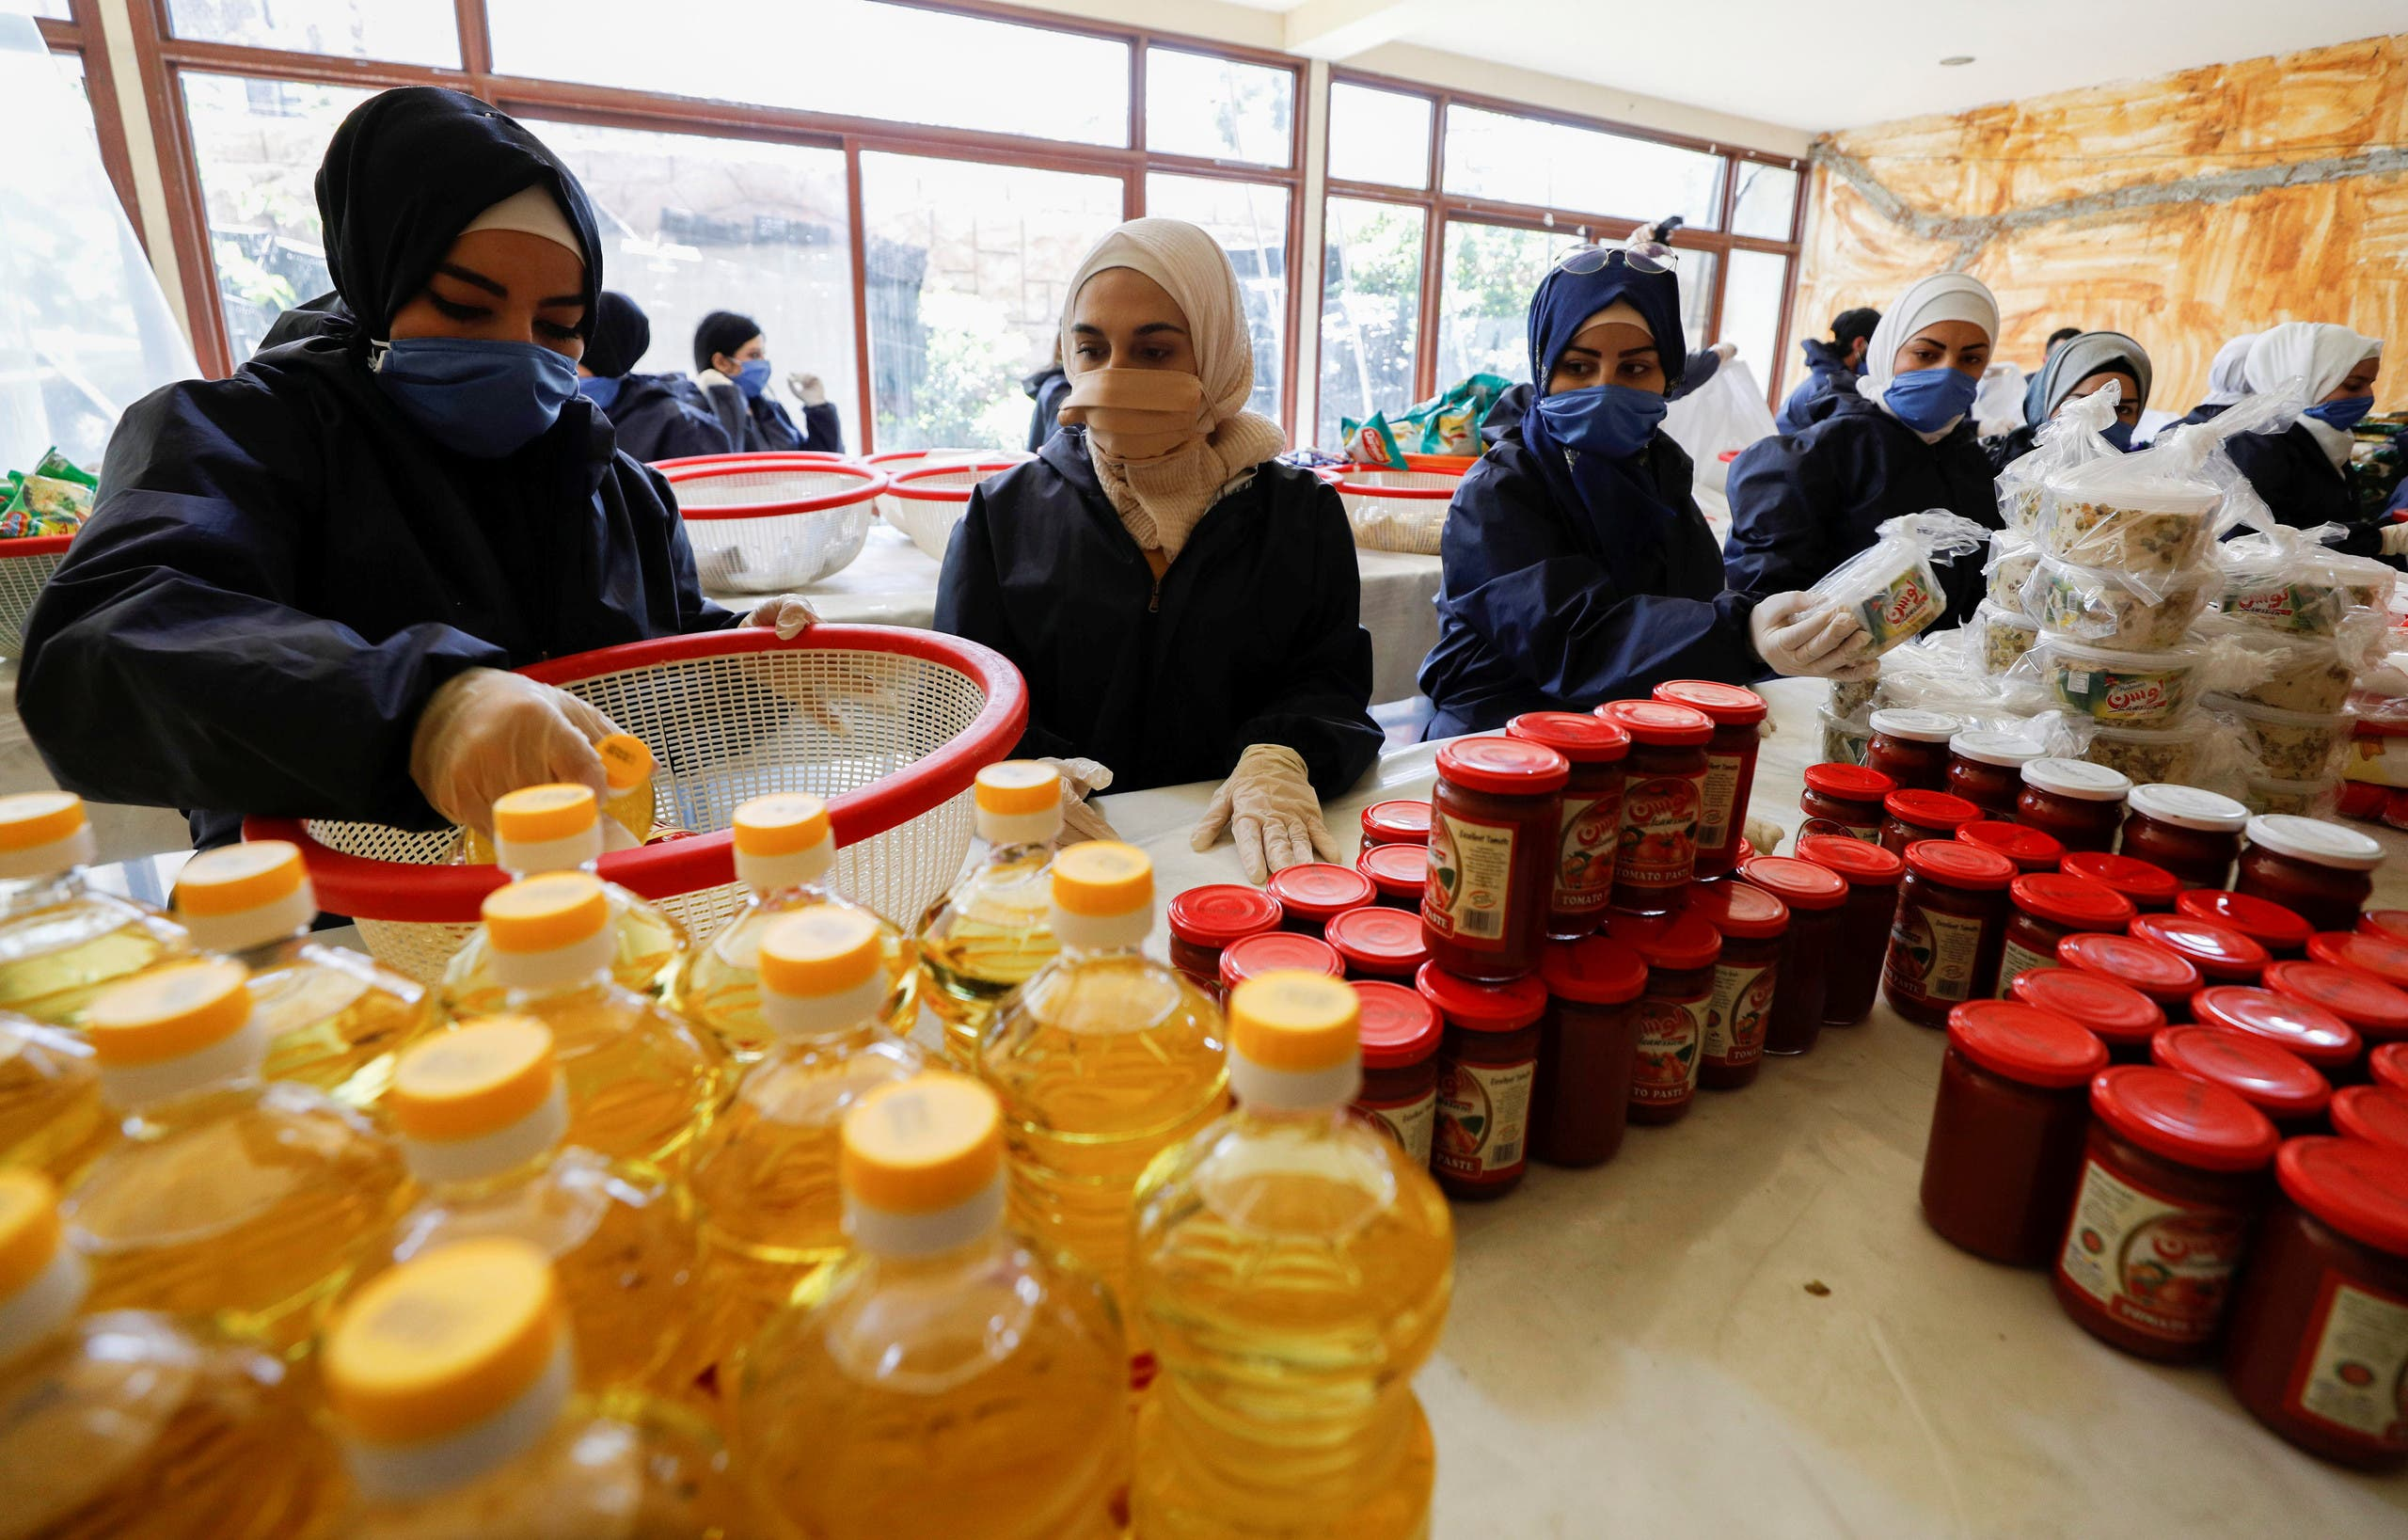 Volunteers from Saed Association prepare aid baskets to be distributed for those affected by the procedures that are taken to curb the spread of the coronavirus disease (COVID-19) in Damascus, Syria April 14, 2020. Picture taken April 14, 2020. (File photo: Reuters)